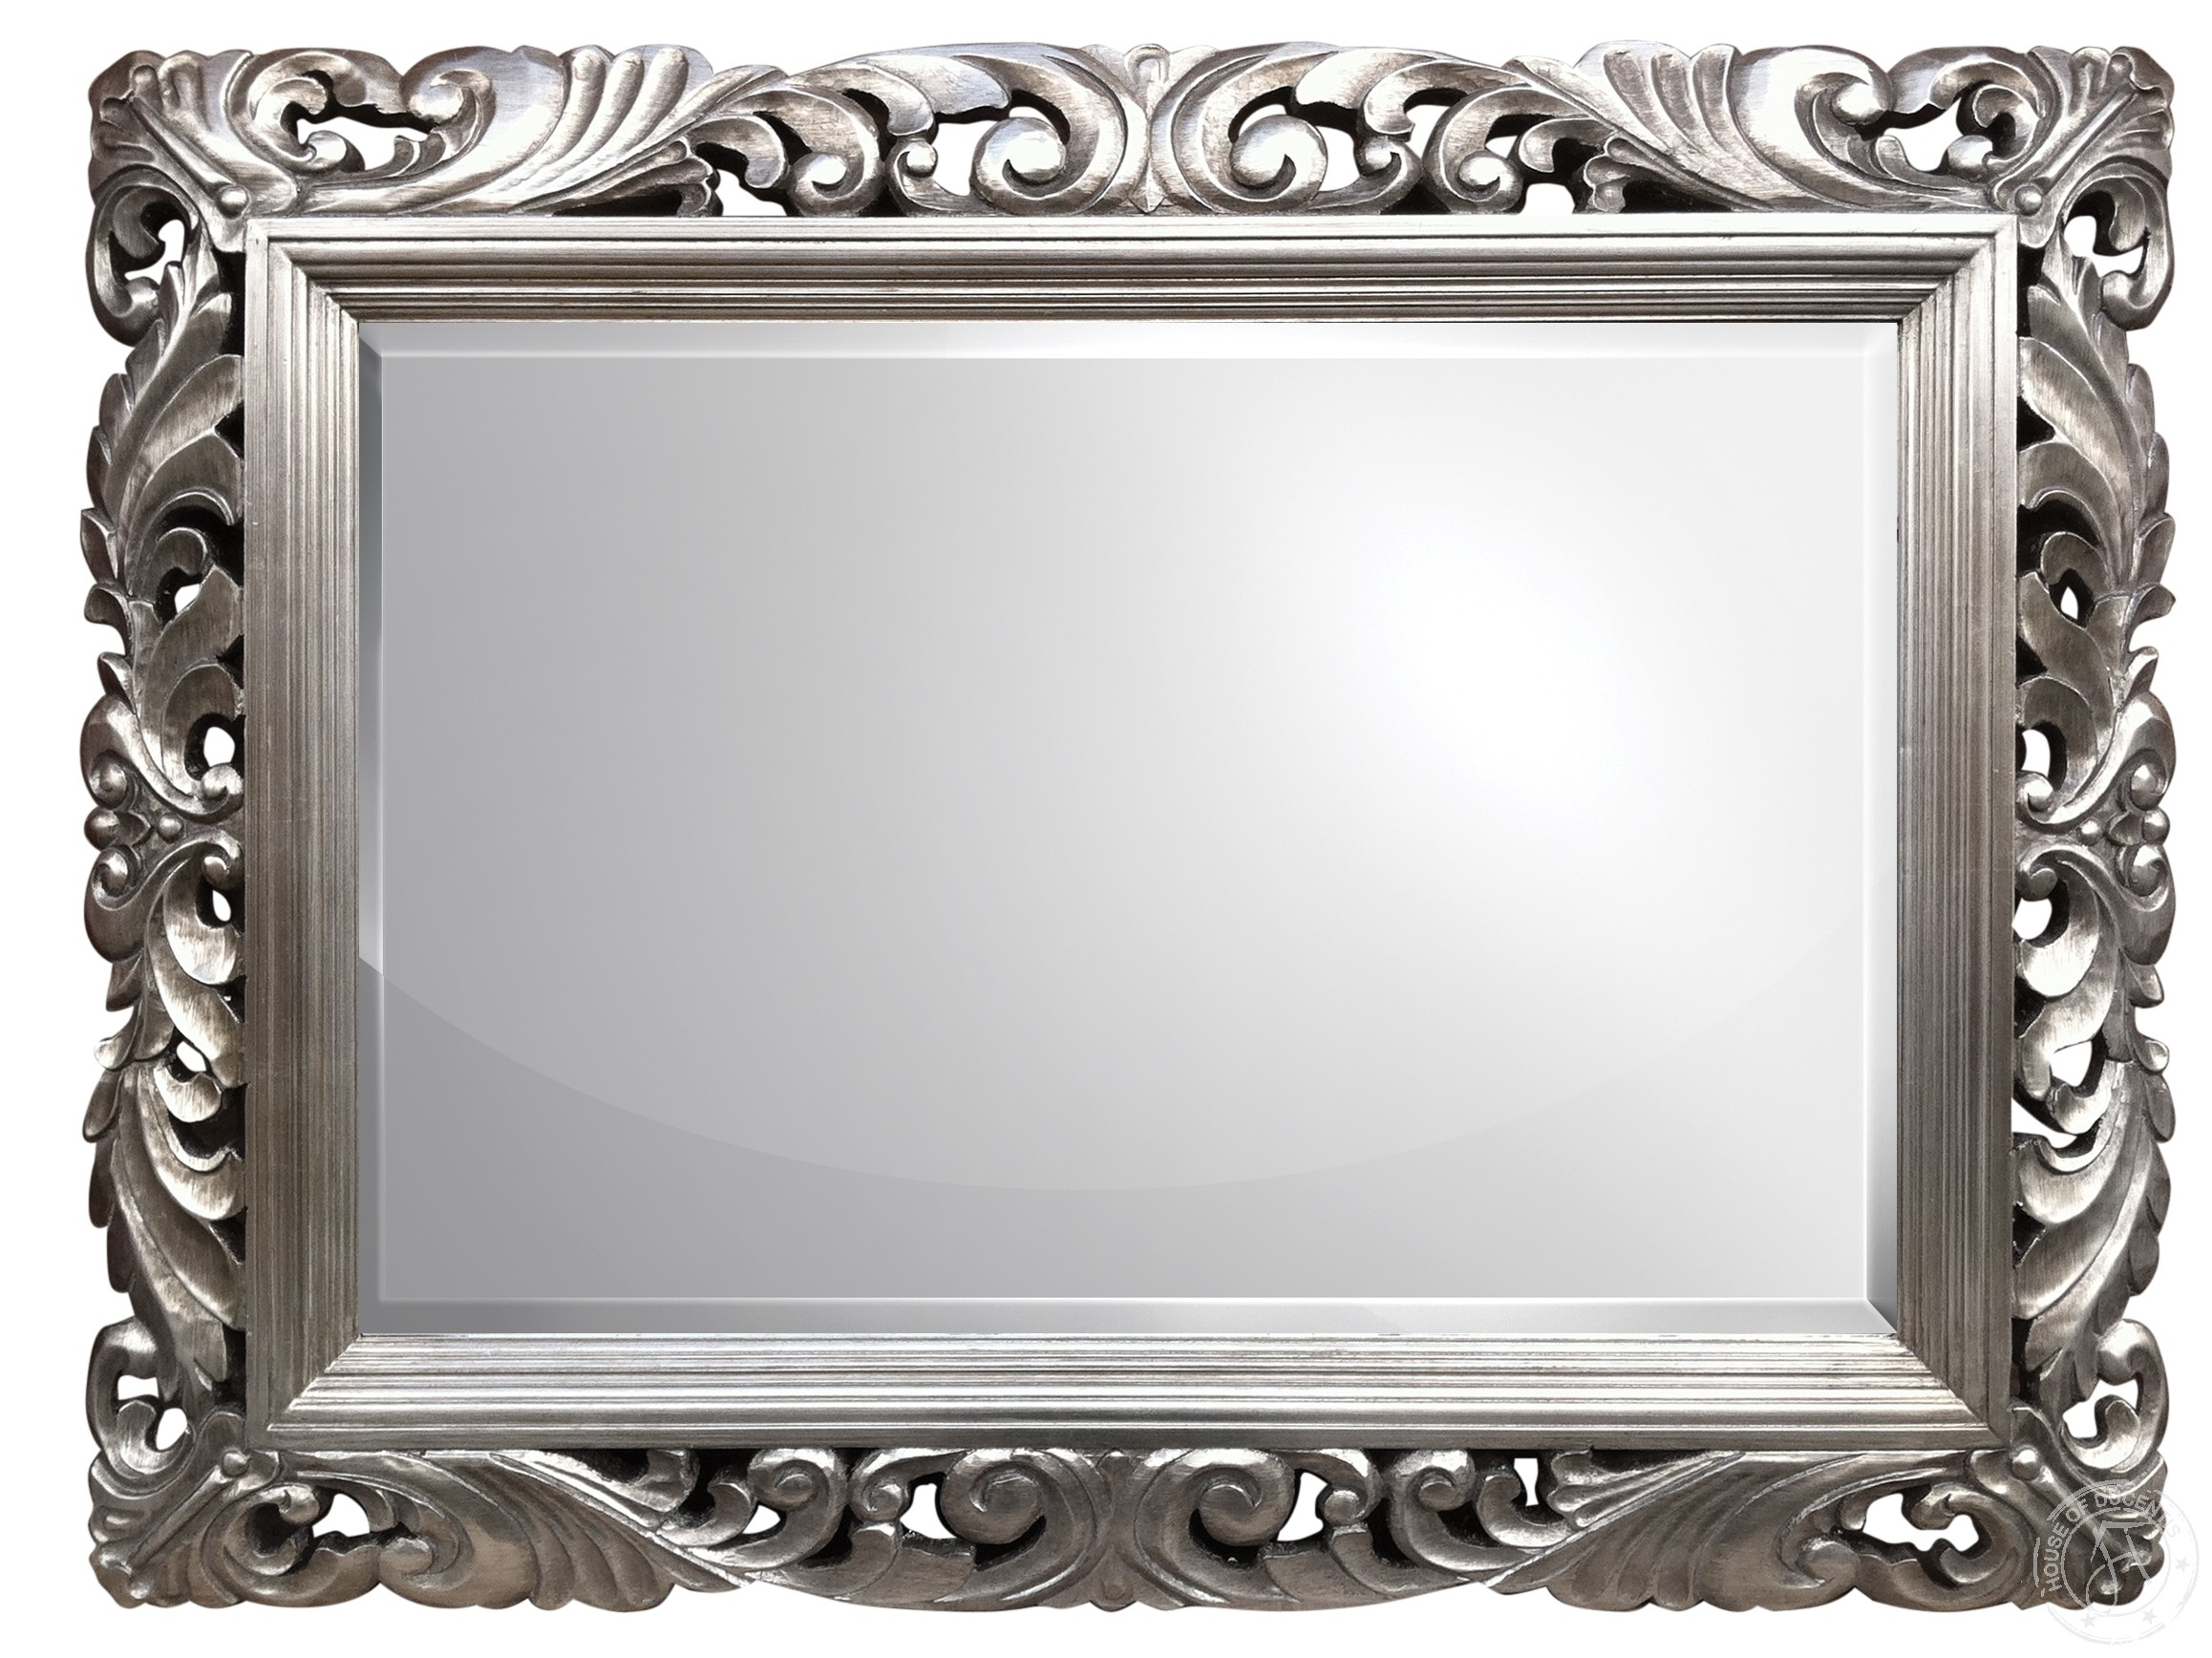 Silver Modern Baroque House Of Ducentis Silver Pinterest In Silver Baroque Mirror (Image 14 of 15)